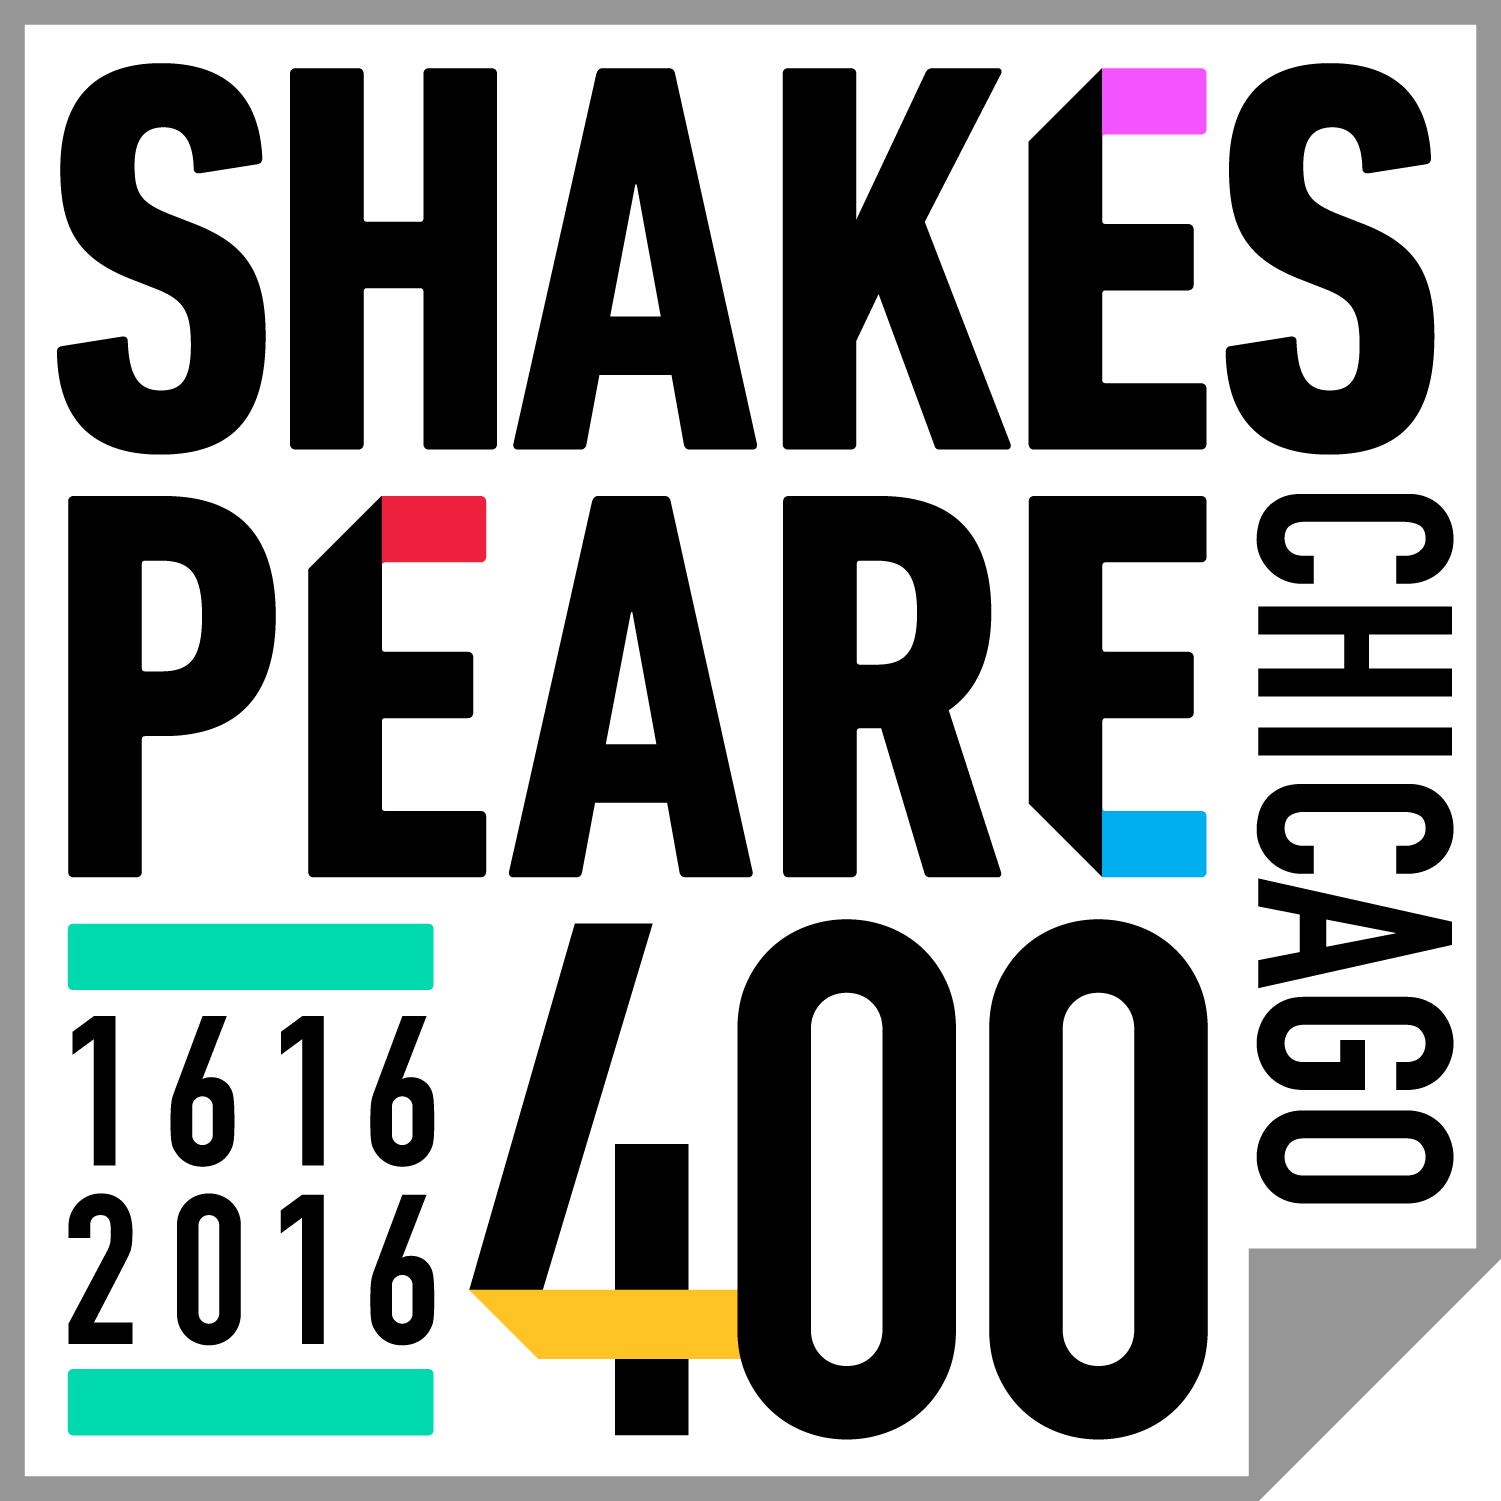 shakespeare 400 chicago shakespeare 400 logo